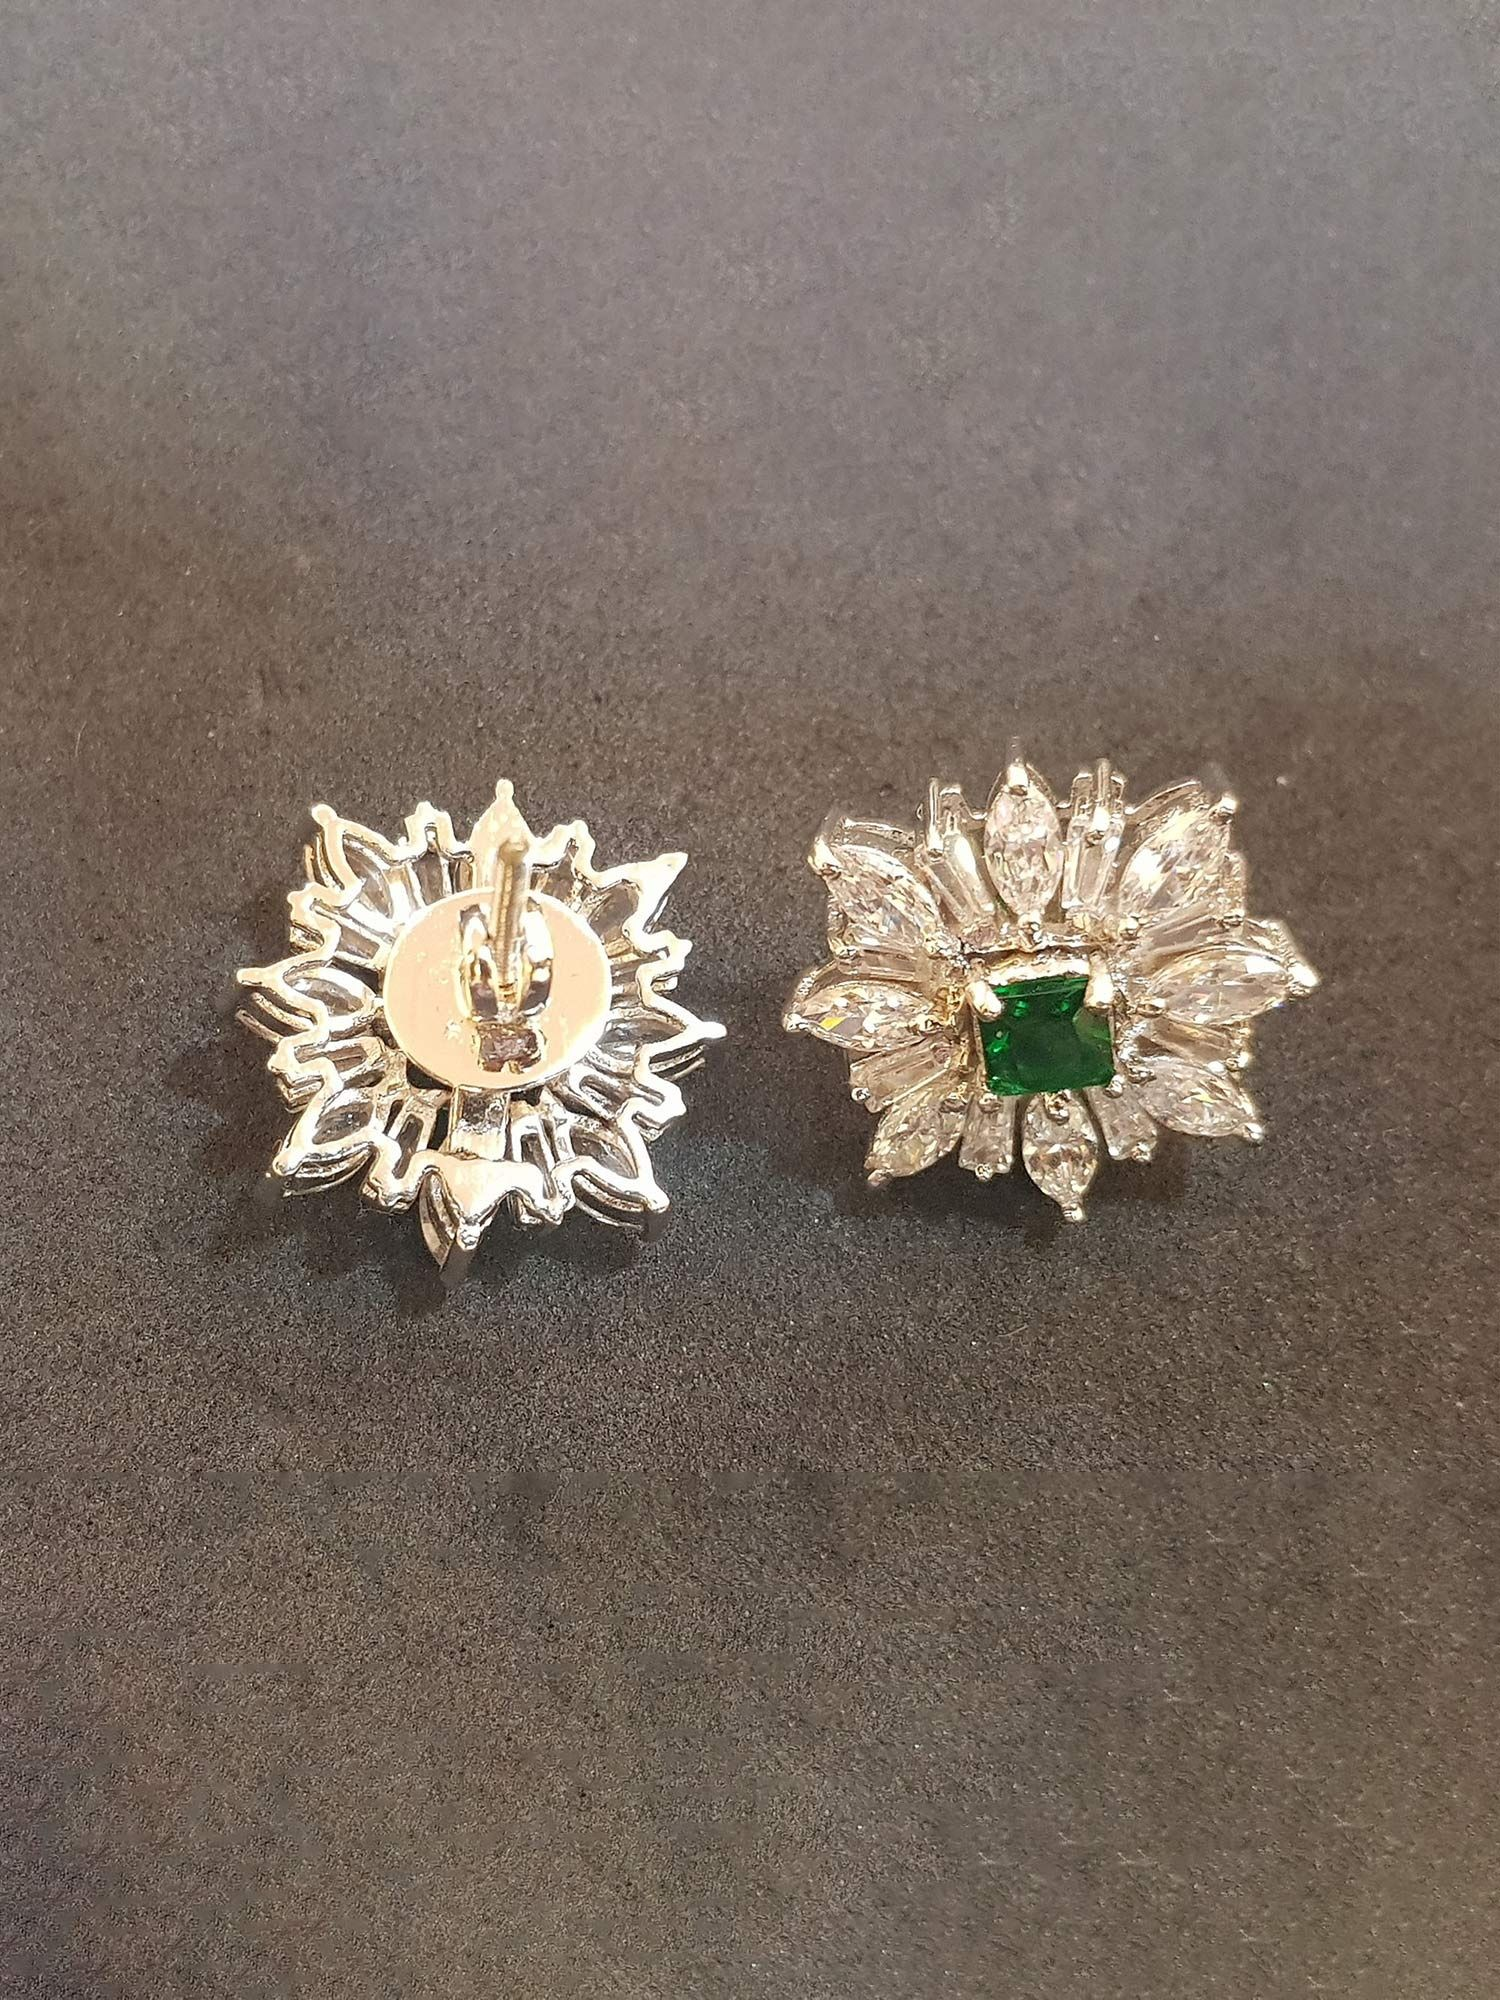 c36602a2d Bejeweled Earrings : Buy Rhodium Finish Flower Tops With Green Stone ...